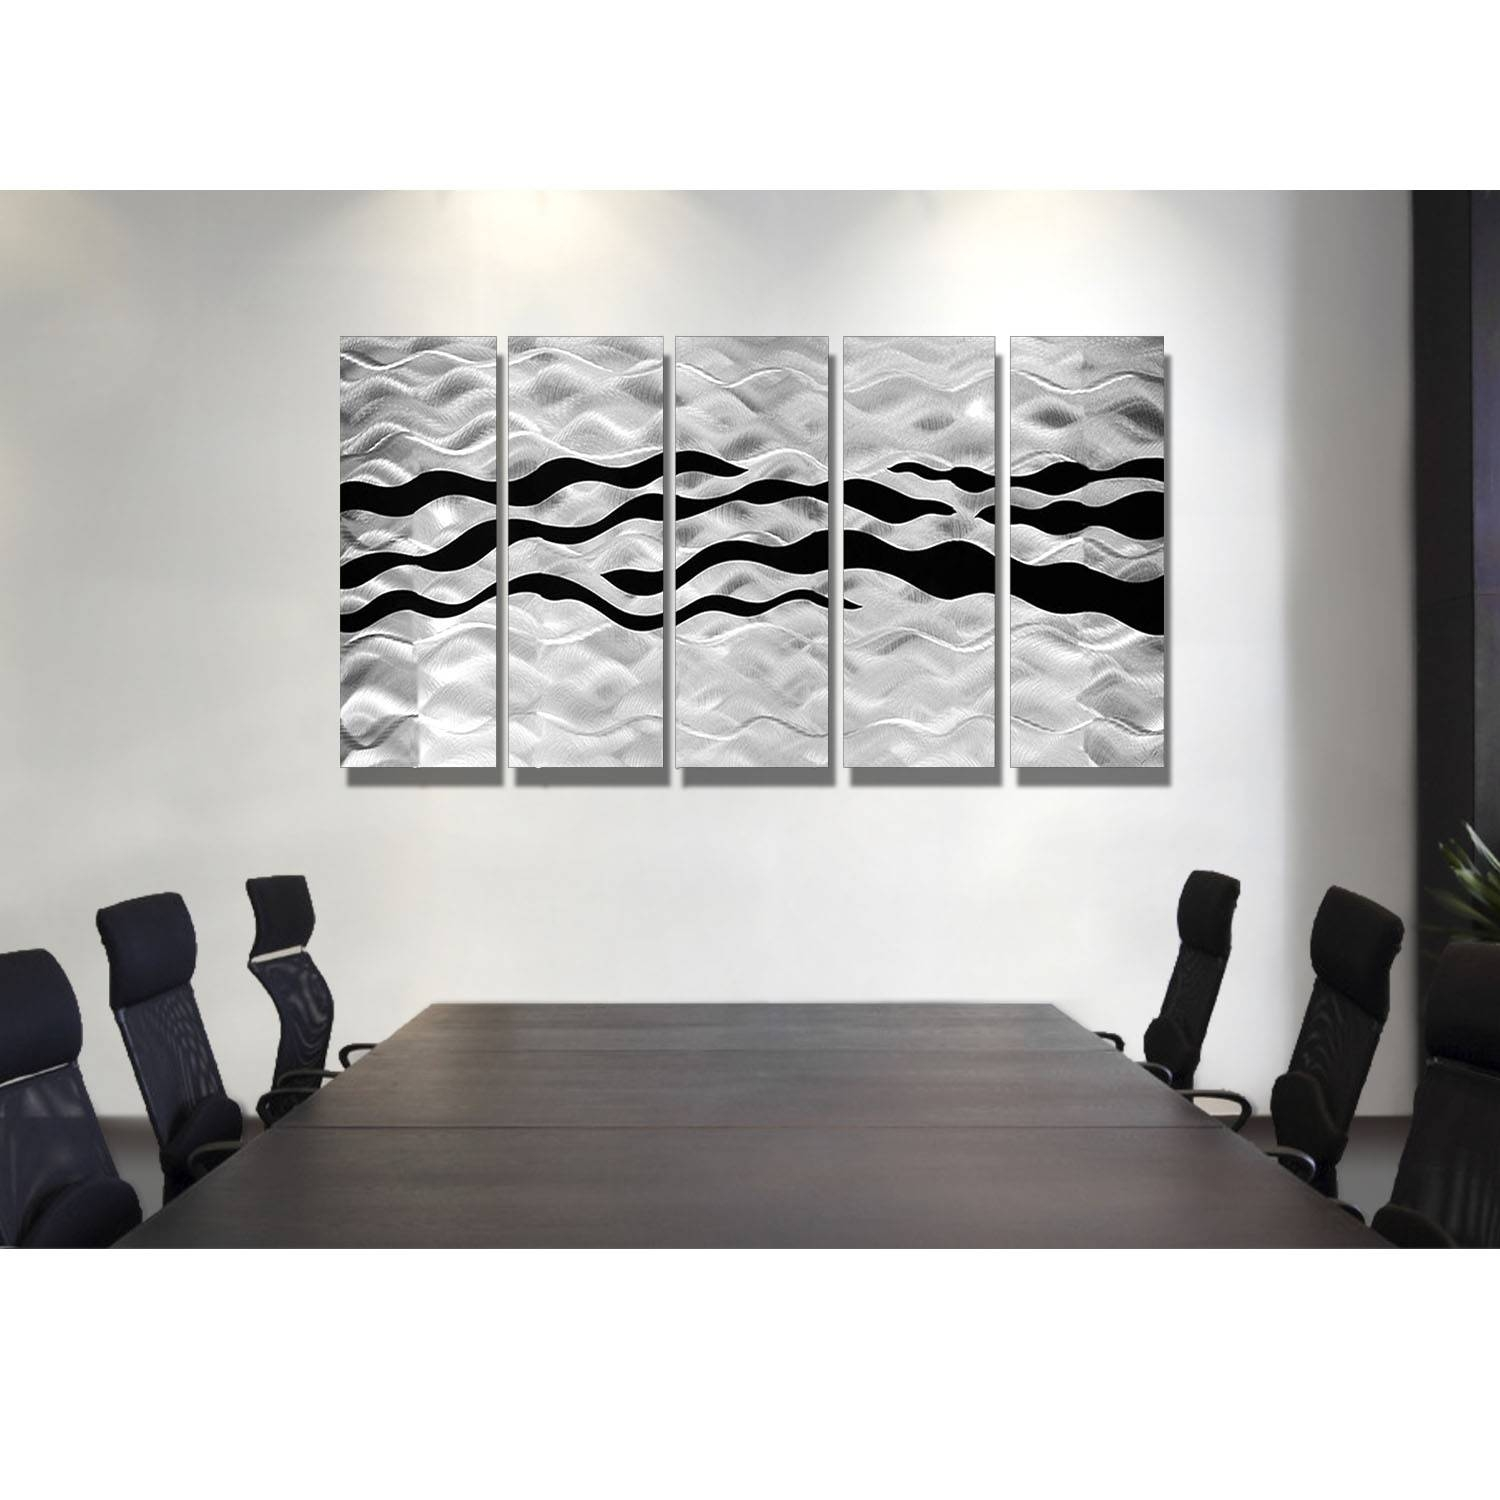 Onyx Oceana – Silver And Black Metal Wall Art – 5 Panel Wall Décor Regarding Latest Black And Silver Metal Wall Art (View 17 of 20)